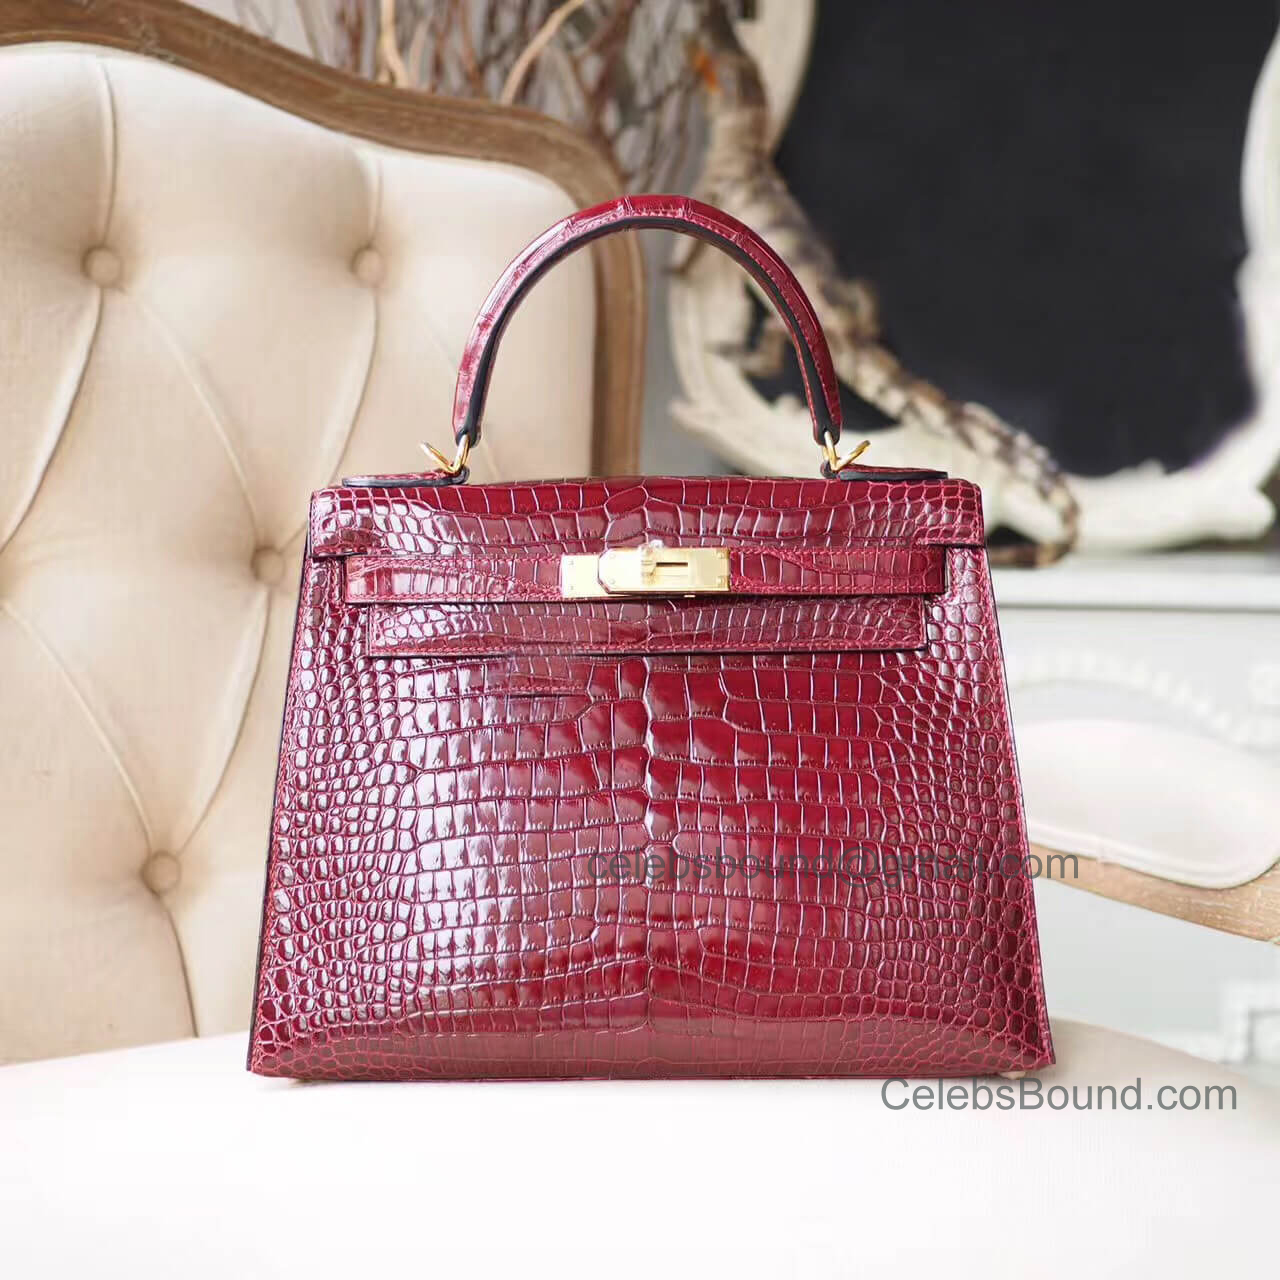 Replica Hermes Kelly 28 Bag in ck57 Bordeaus Shiny Porosus Croc PHW